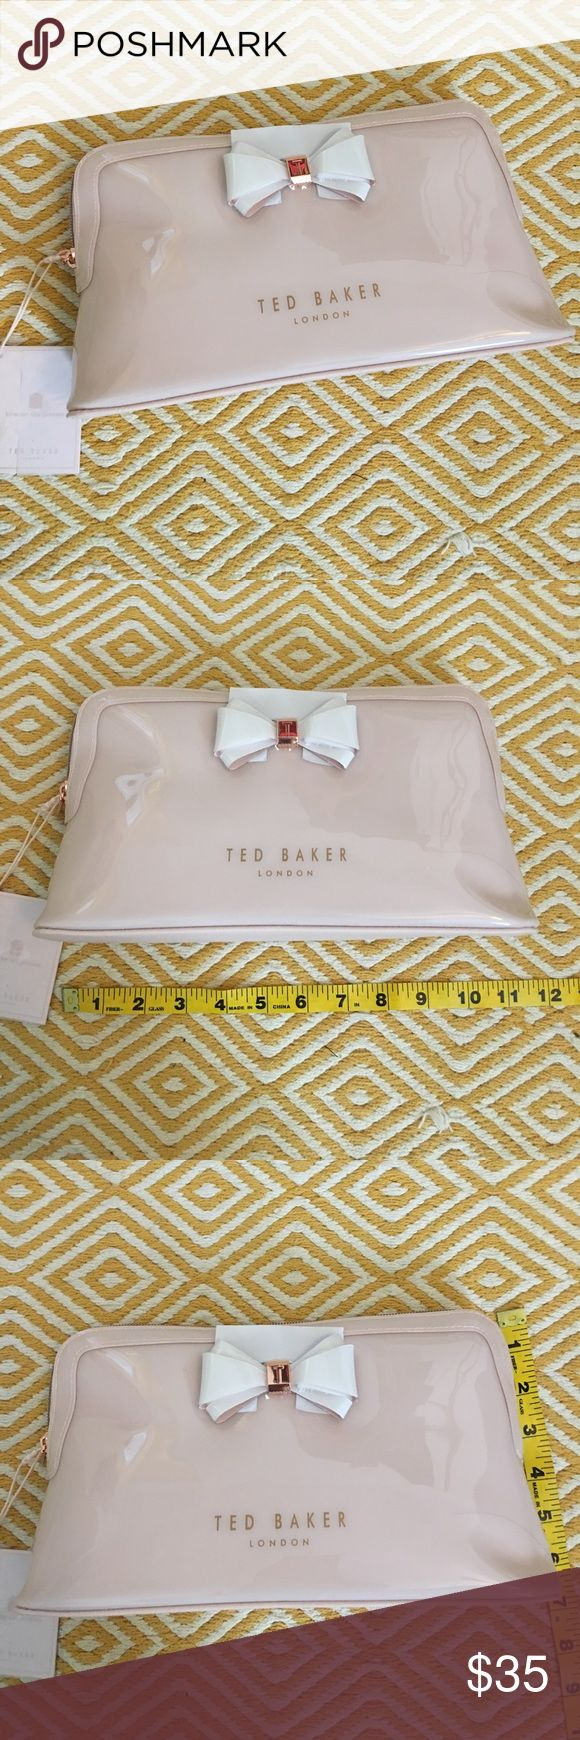 NWT! Ted Baker Abbie Large Cosmetic Case NWT! Ted Baker Abbie Large Cosmetic Case. Brand new — I didn't notice the measurements when I purchased this online, I need a smaller one for a small purse. Authentic (and sooo adorable!). Ted Baker Bags